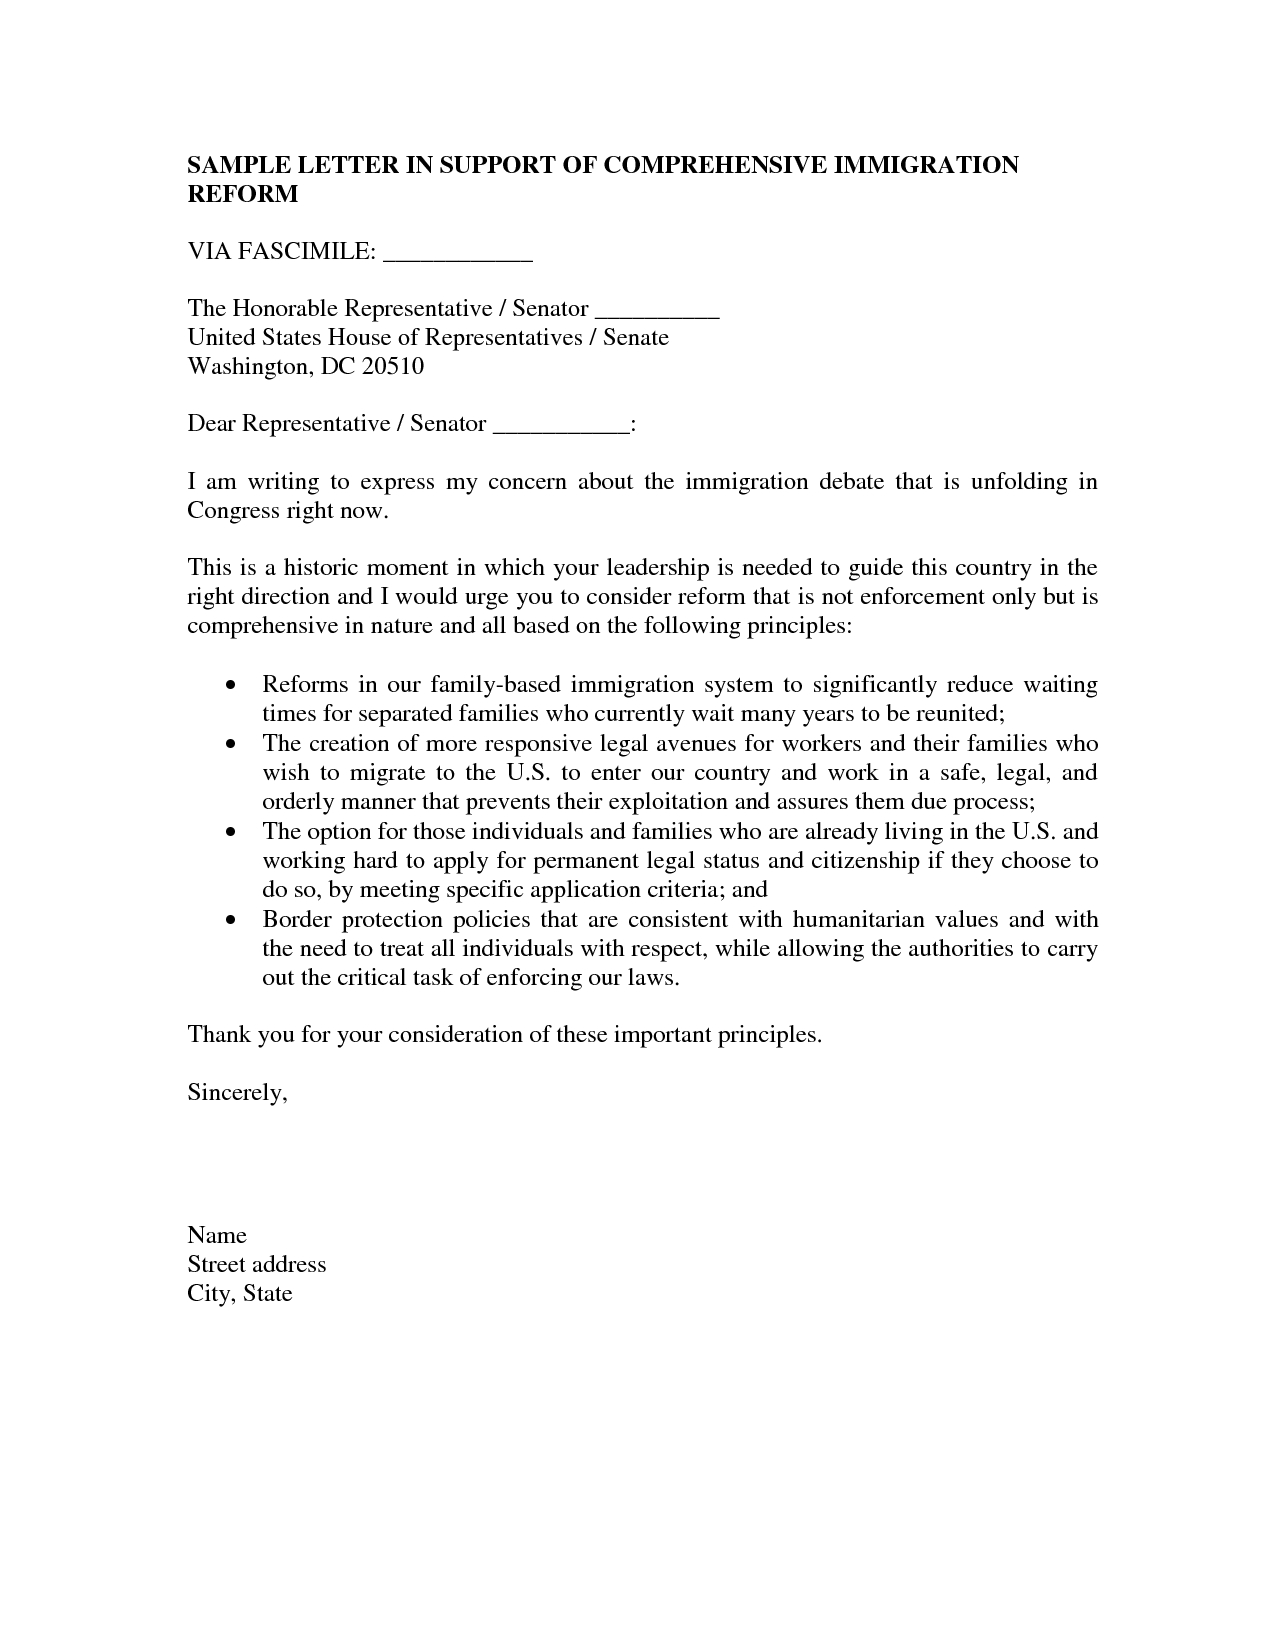 Sample Child Support Letter Template - How to Write A Child Support Letter Image Collections Letter